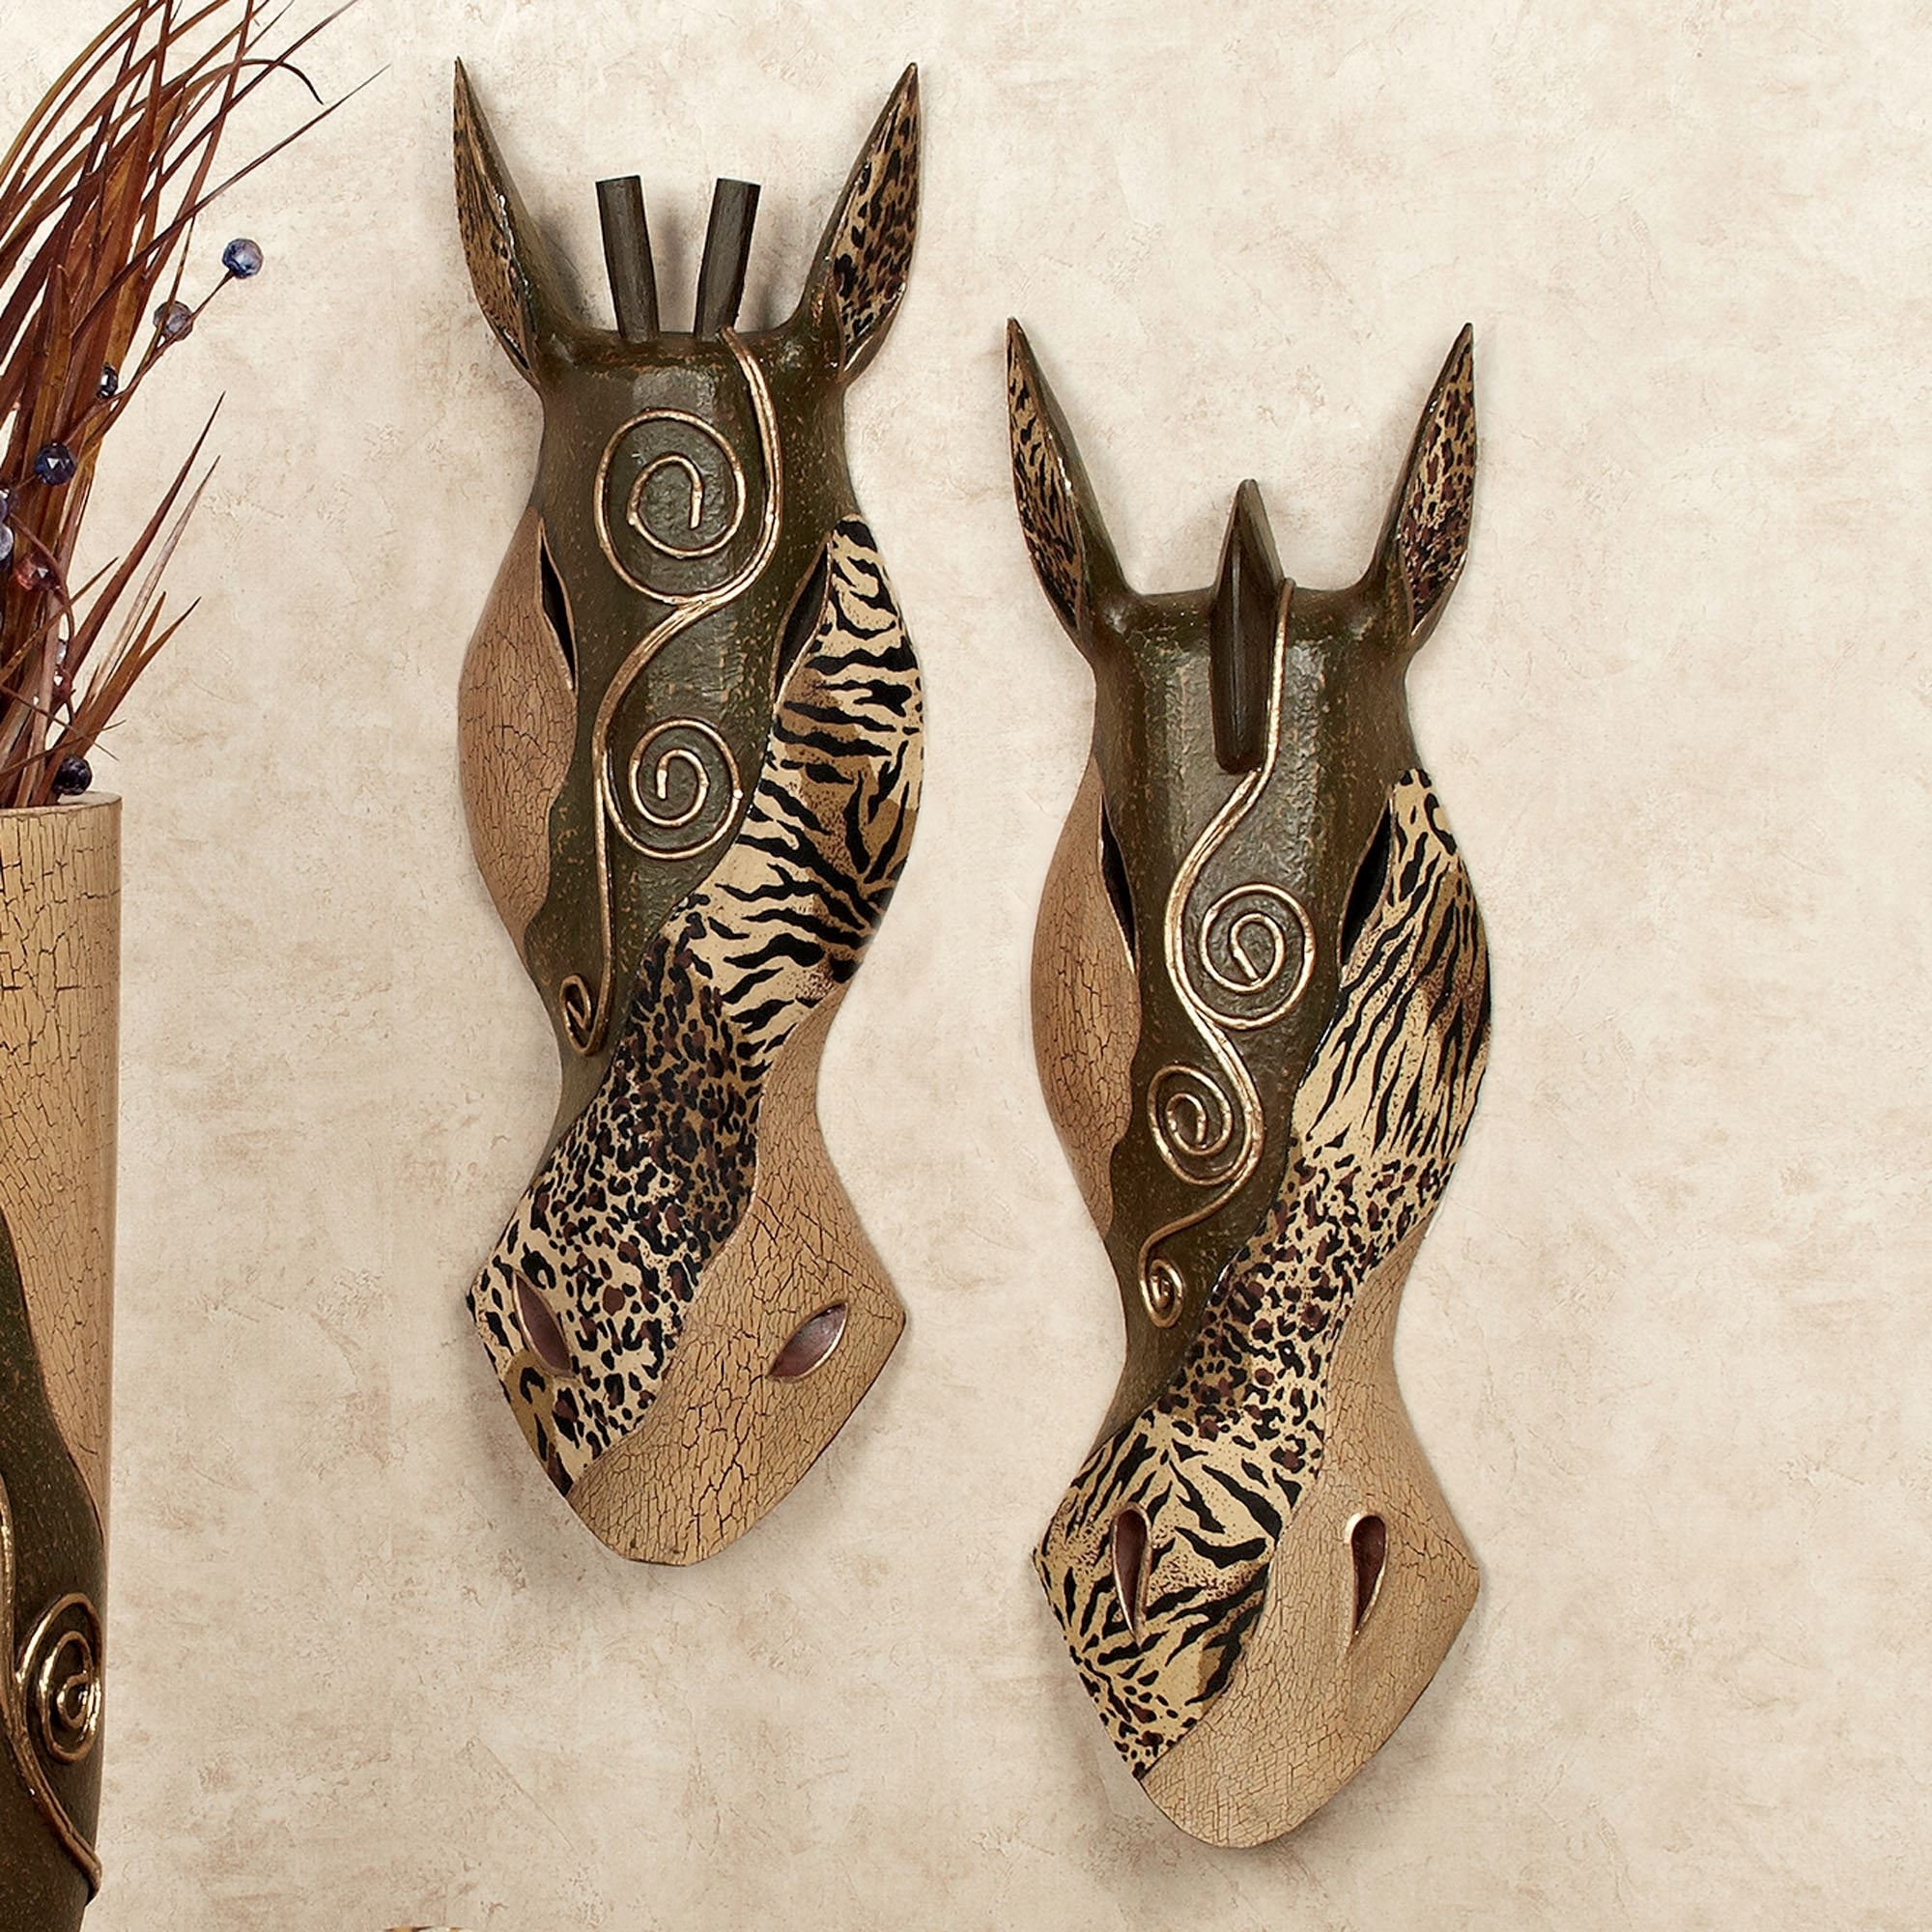 Touch Of Class Pertaining To African Wall Accents (View 7 of 15)